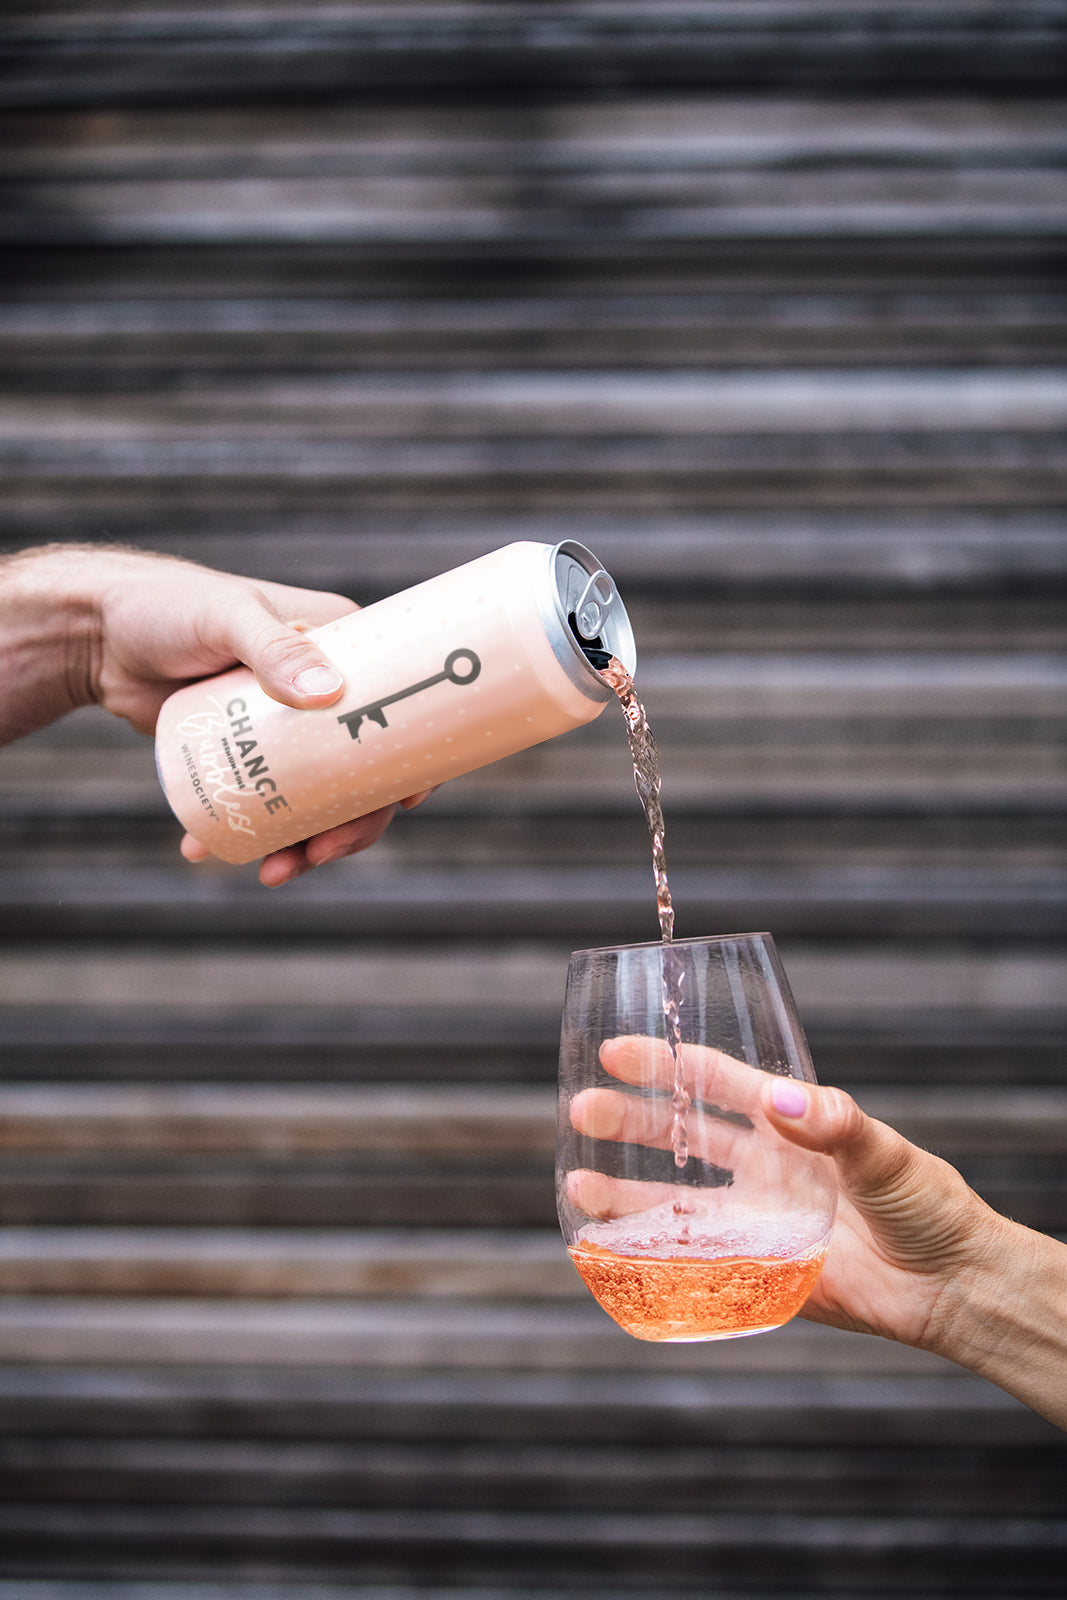 CHANCE Bubbles rosé wine being poured out